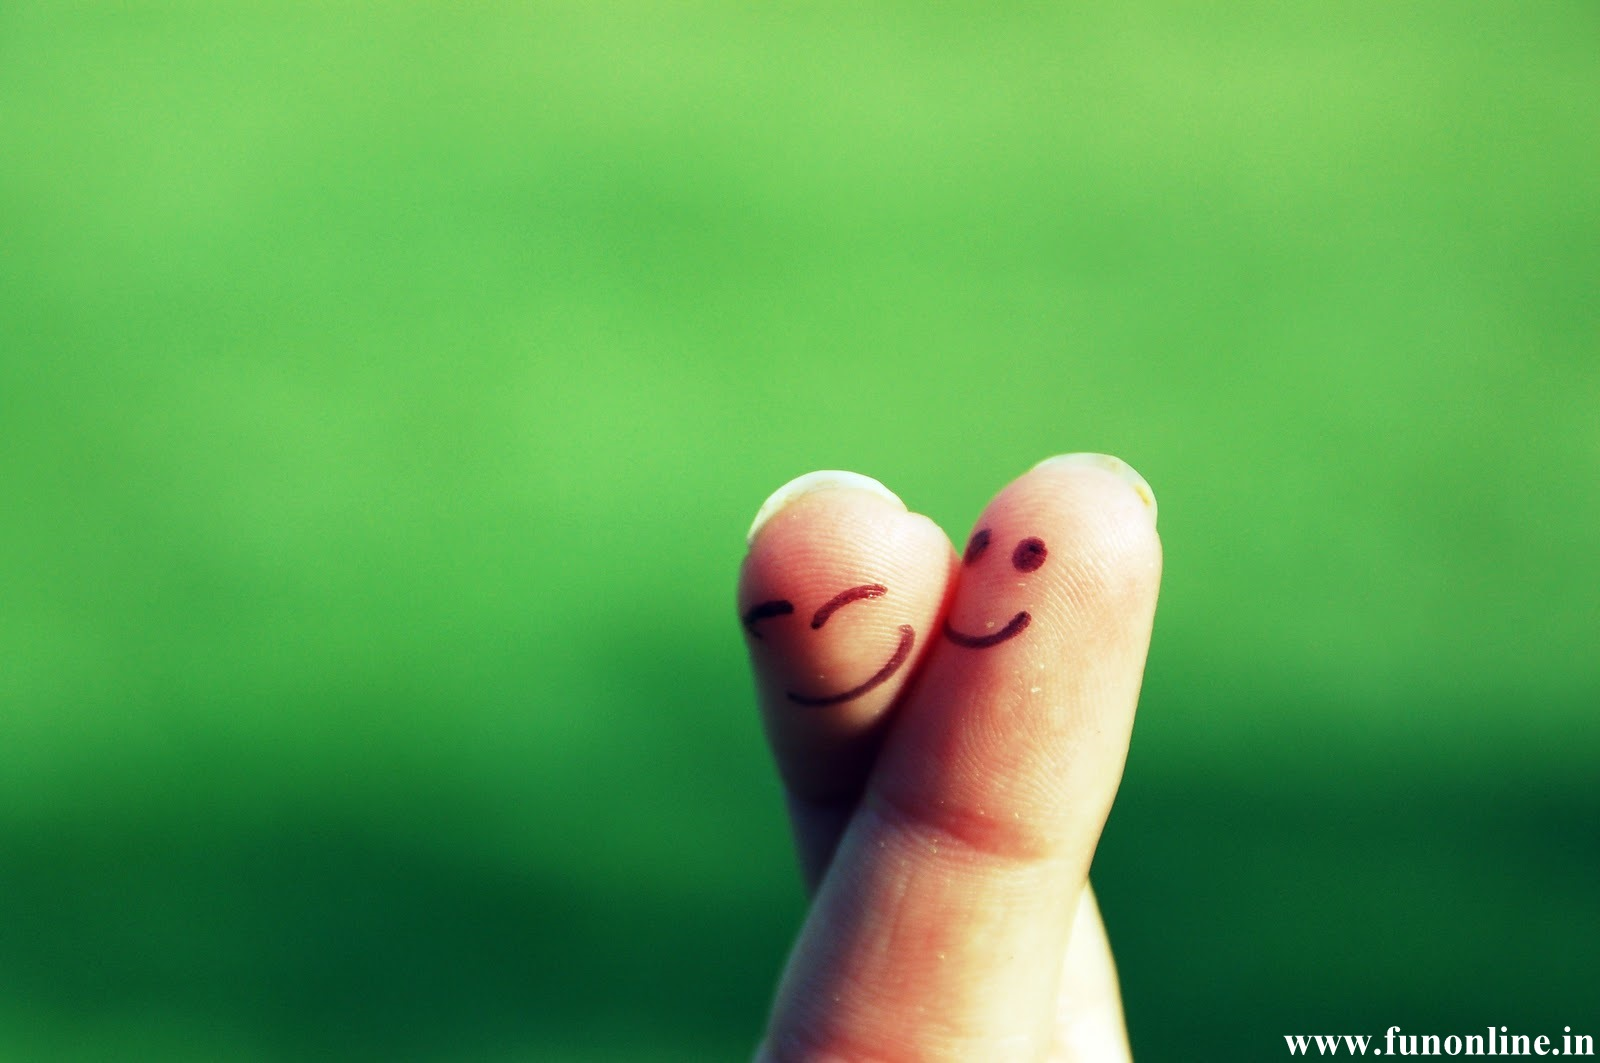 Cute Love Fingers 1600x1063